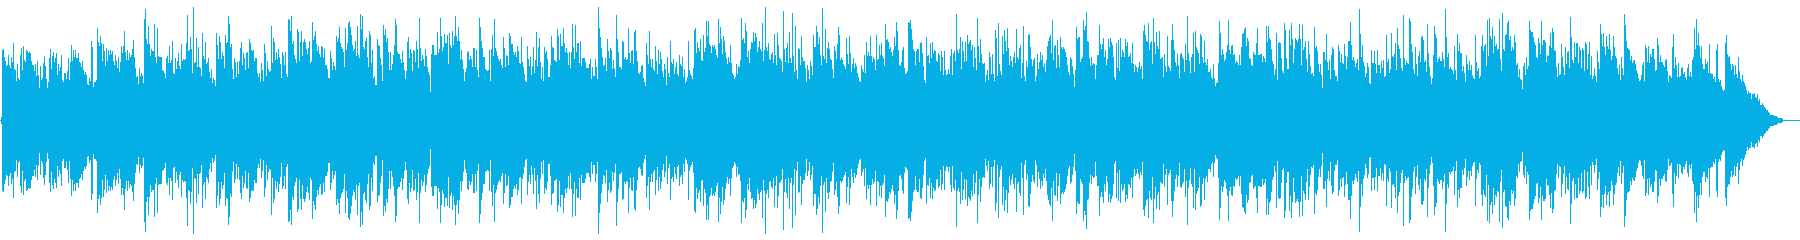 Light and clean acoustic sound's reproduced waveform